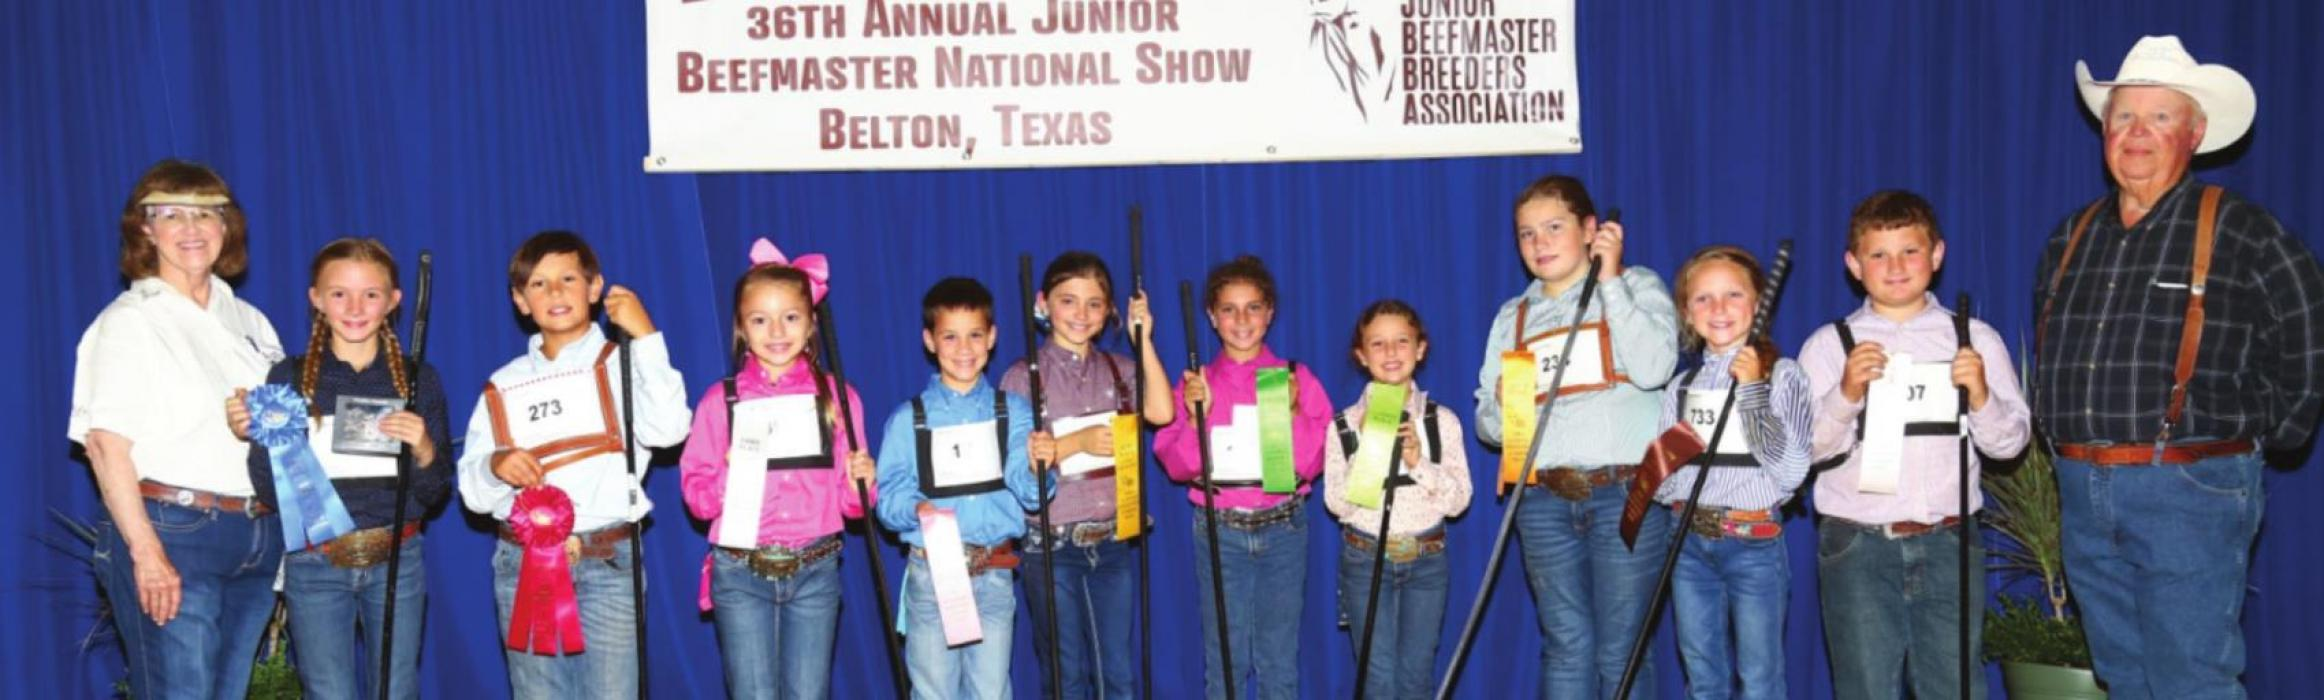 Top 10 Junior Showmanship winners with judge.